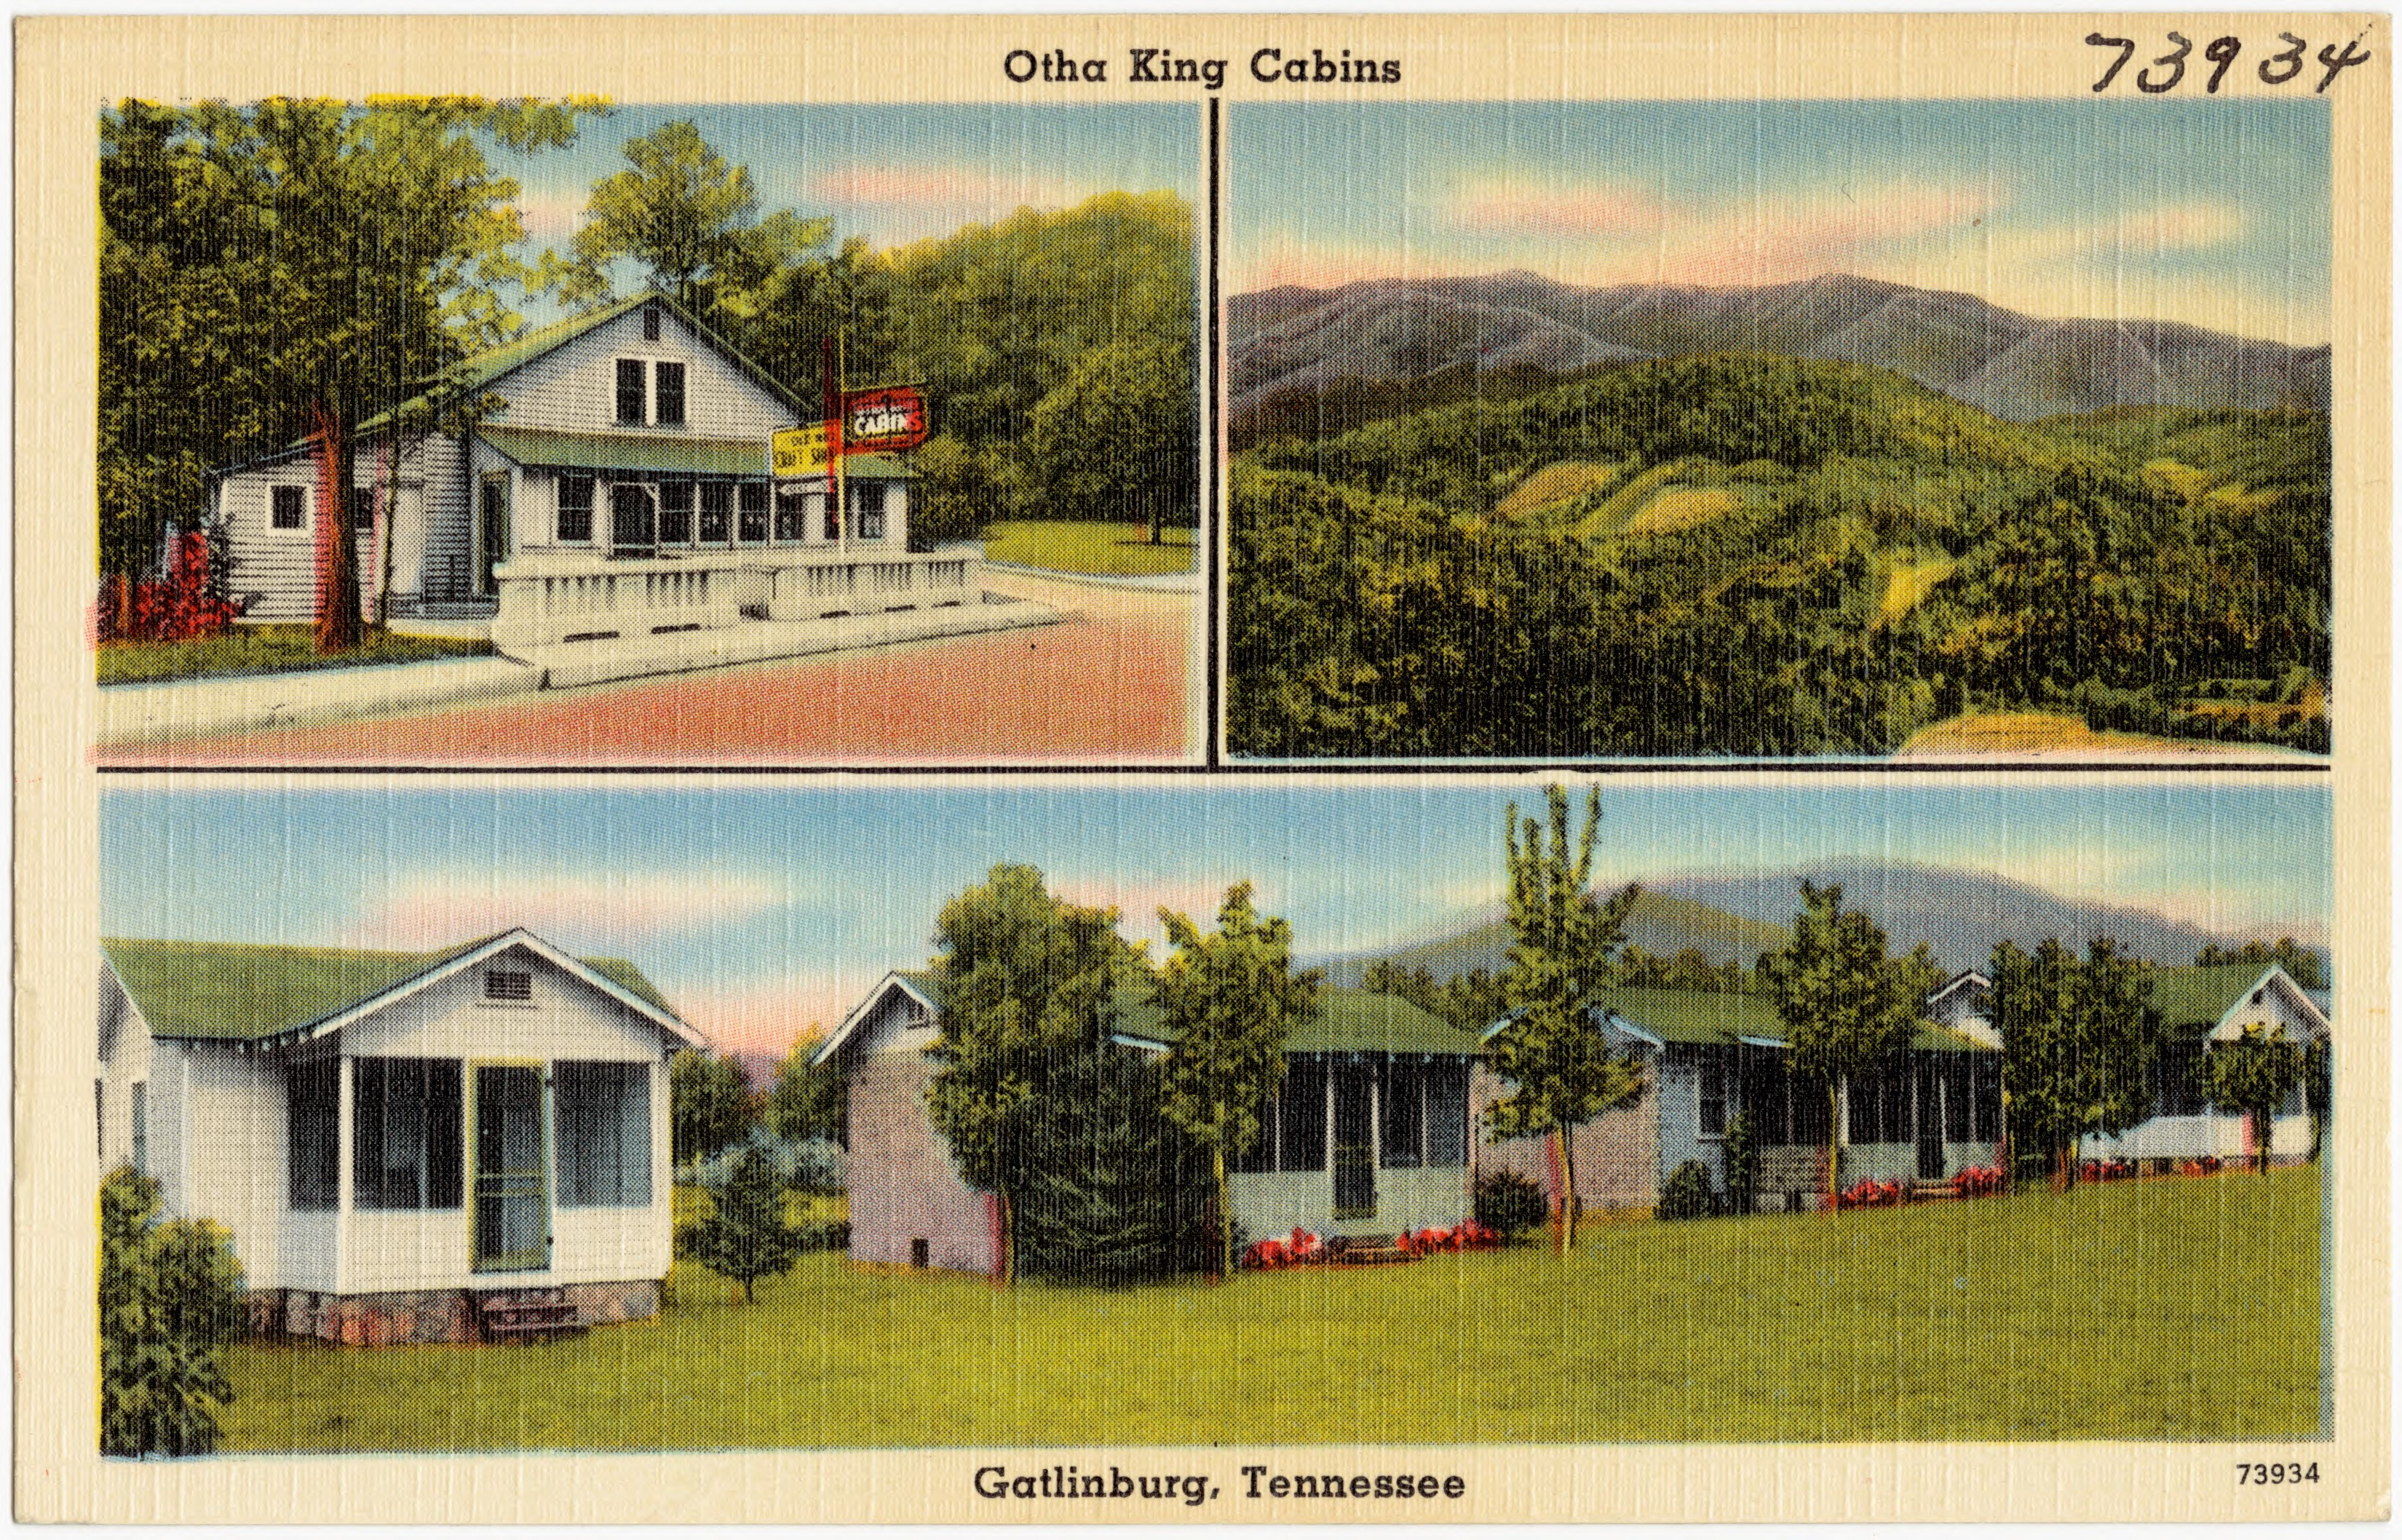 cheap honeymoon in for tennessee near gatlinburg rent mountains tn smoky cabins downtown